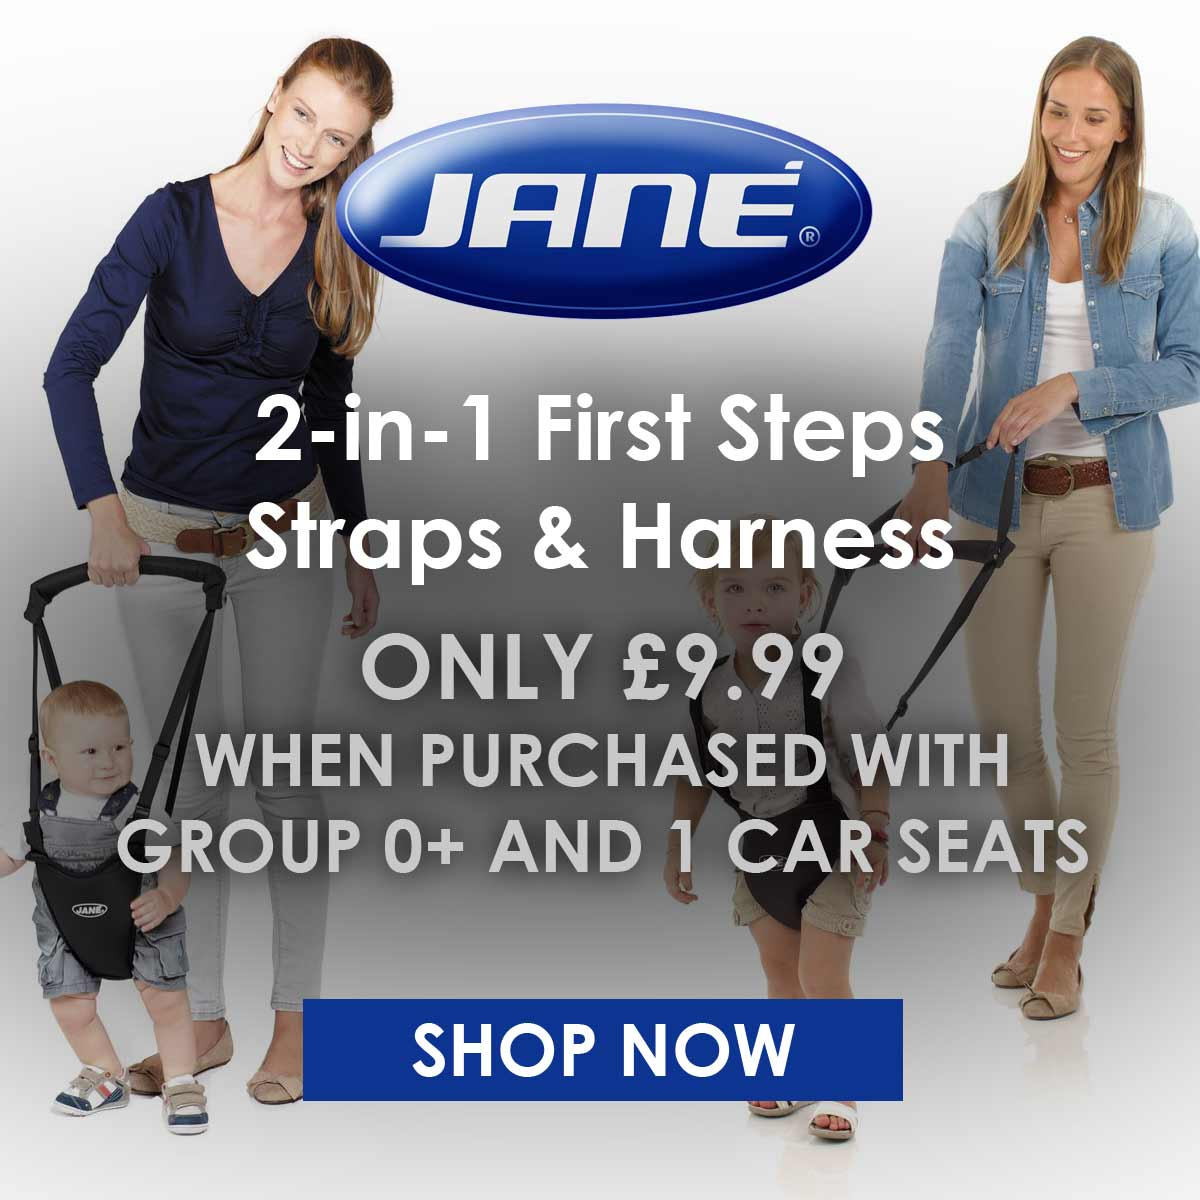 Jane 2in1 First Steps Straps & Harness